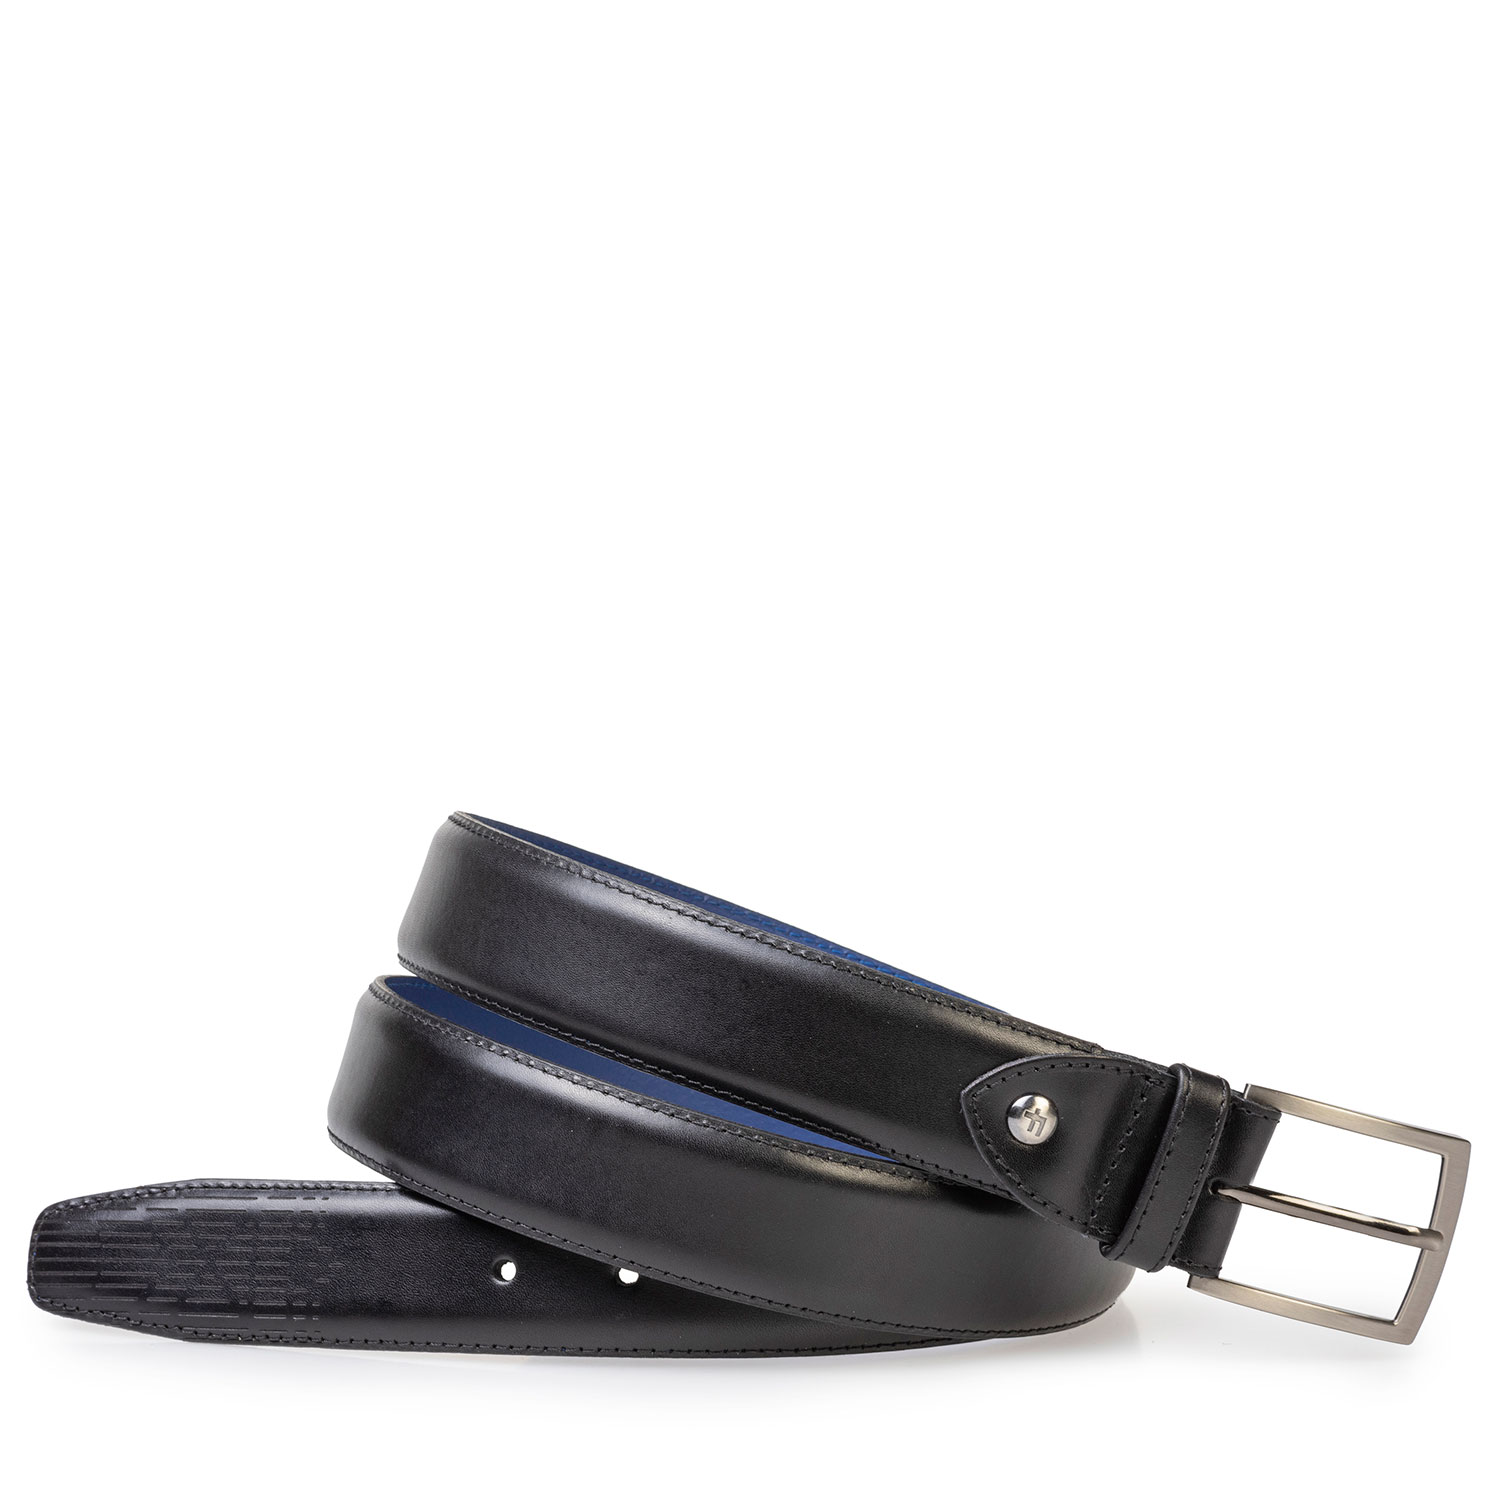 75214/02 - Black leather belt